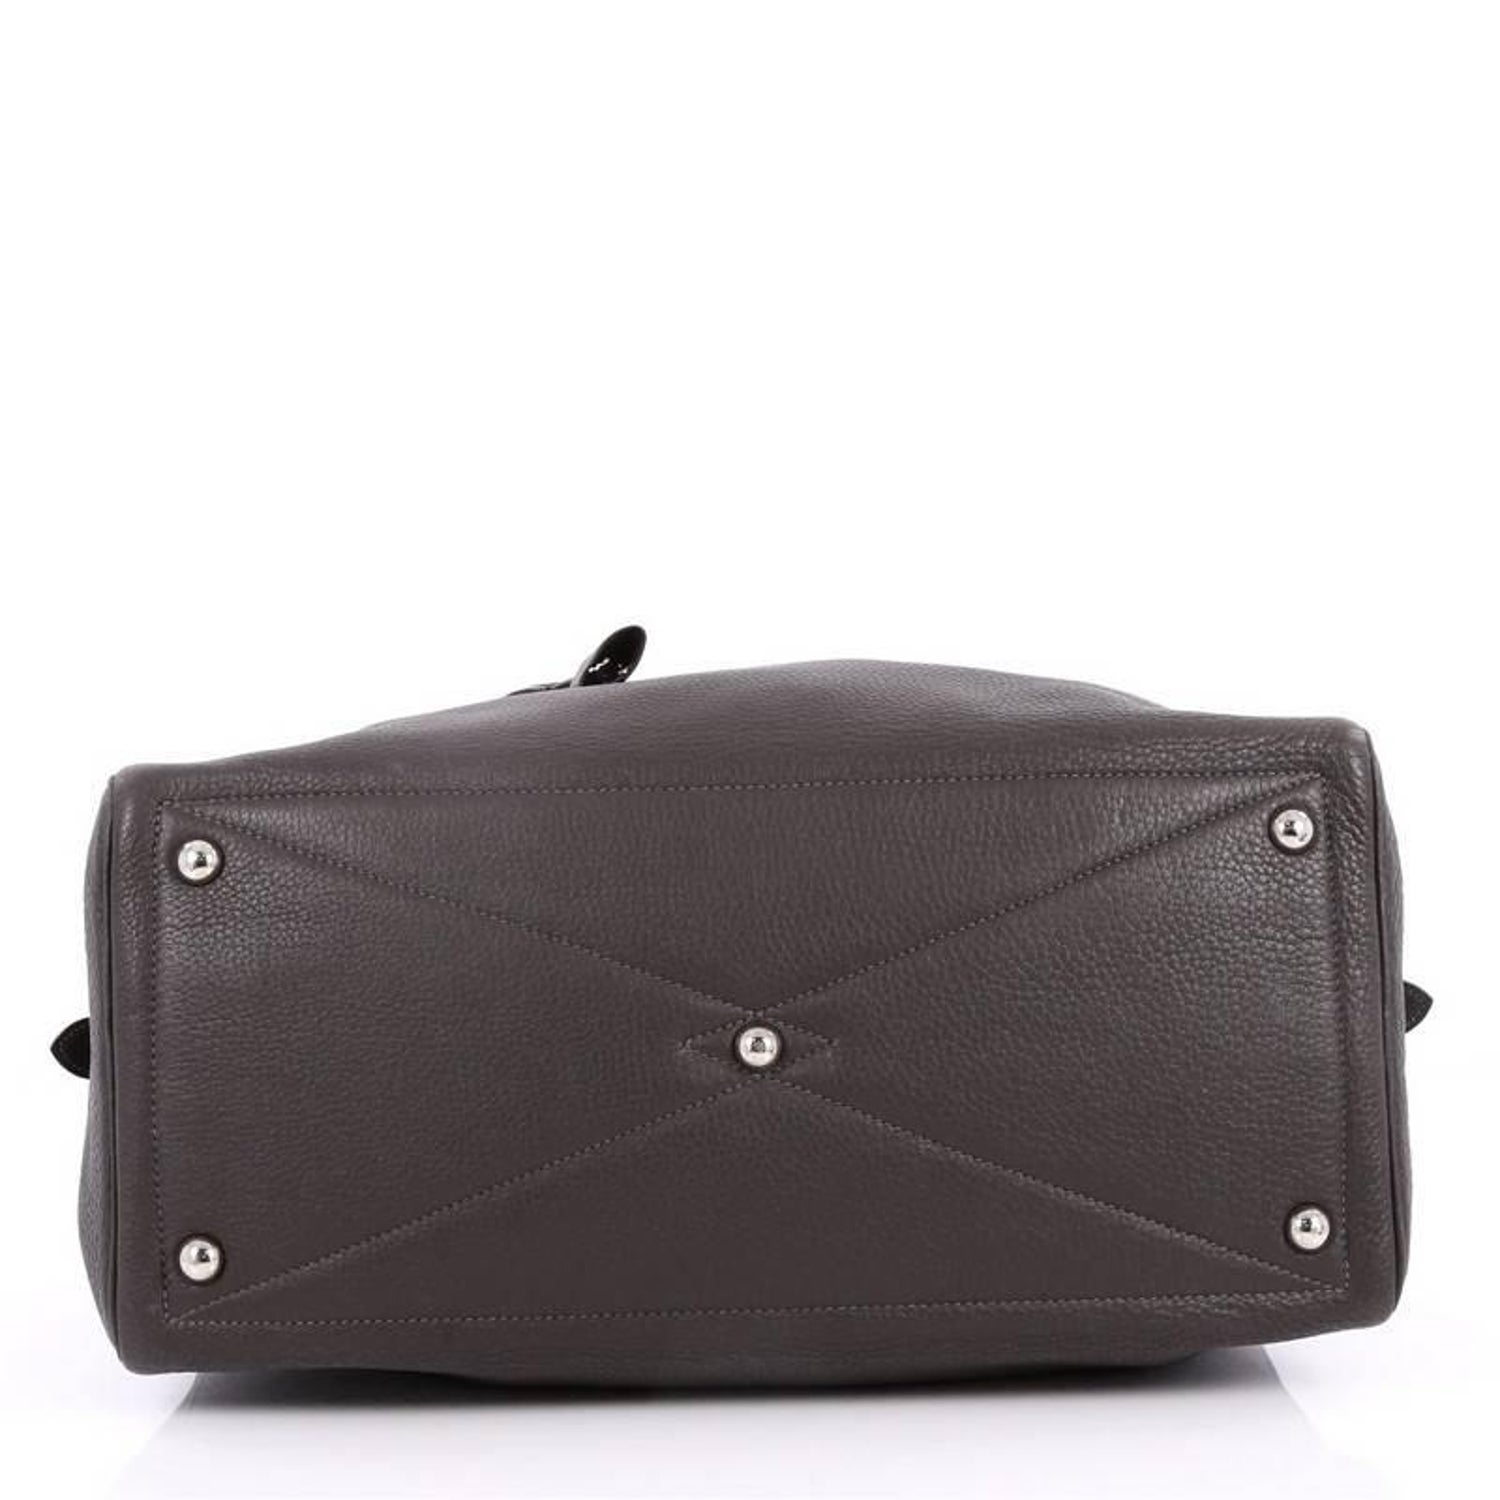 7ca6d36a7118 Hermes Victoria Travel Bag Clemence 43 at 1stdibs